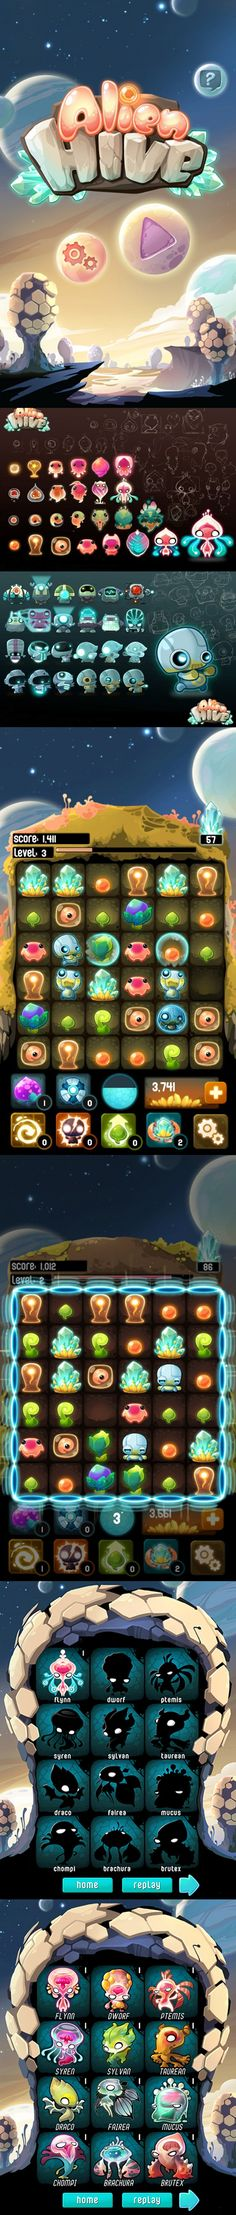 #GAMEDESIGN http://www.appxplore.com/index.php/games/alien-hive